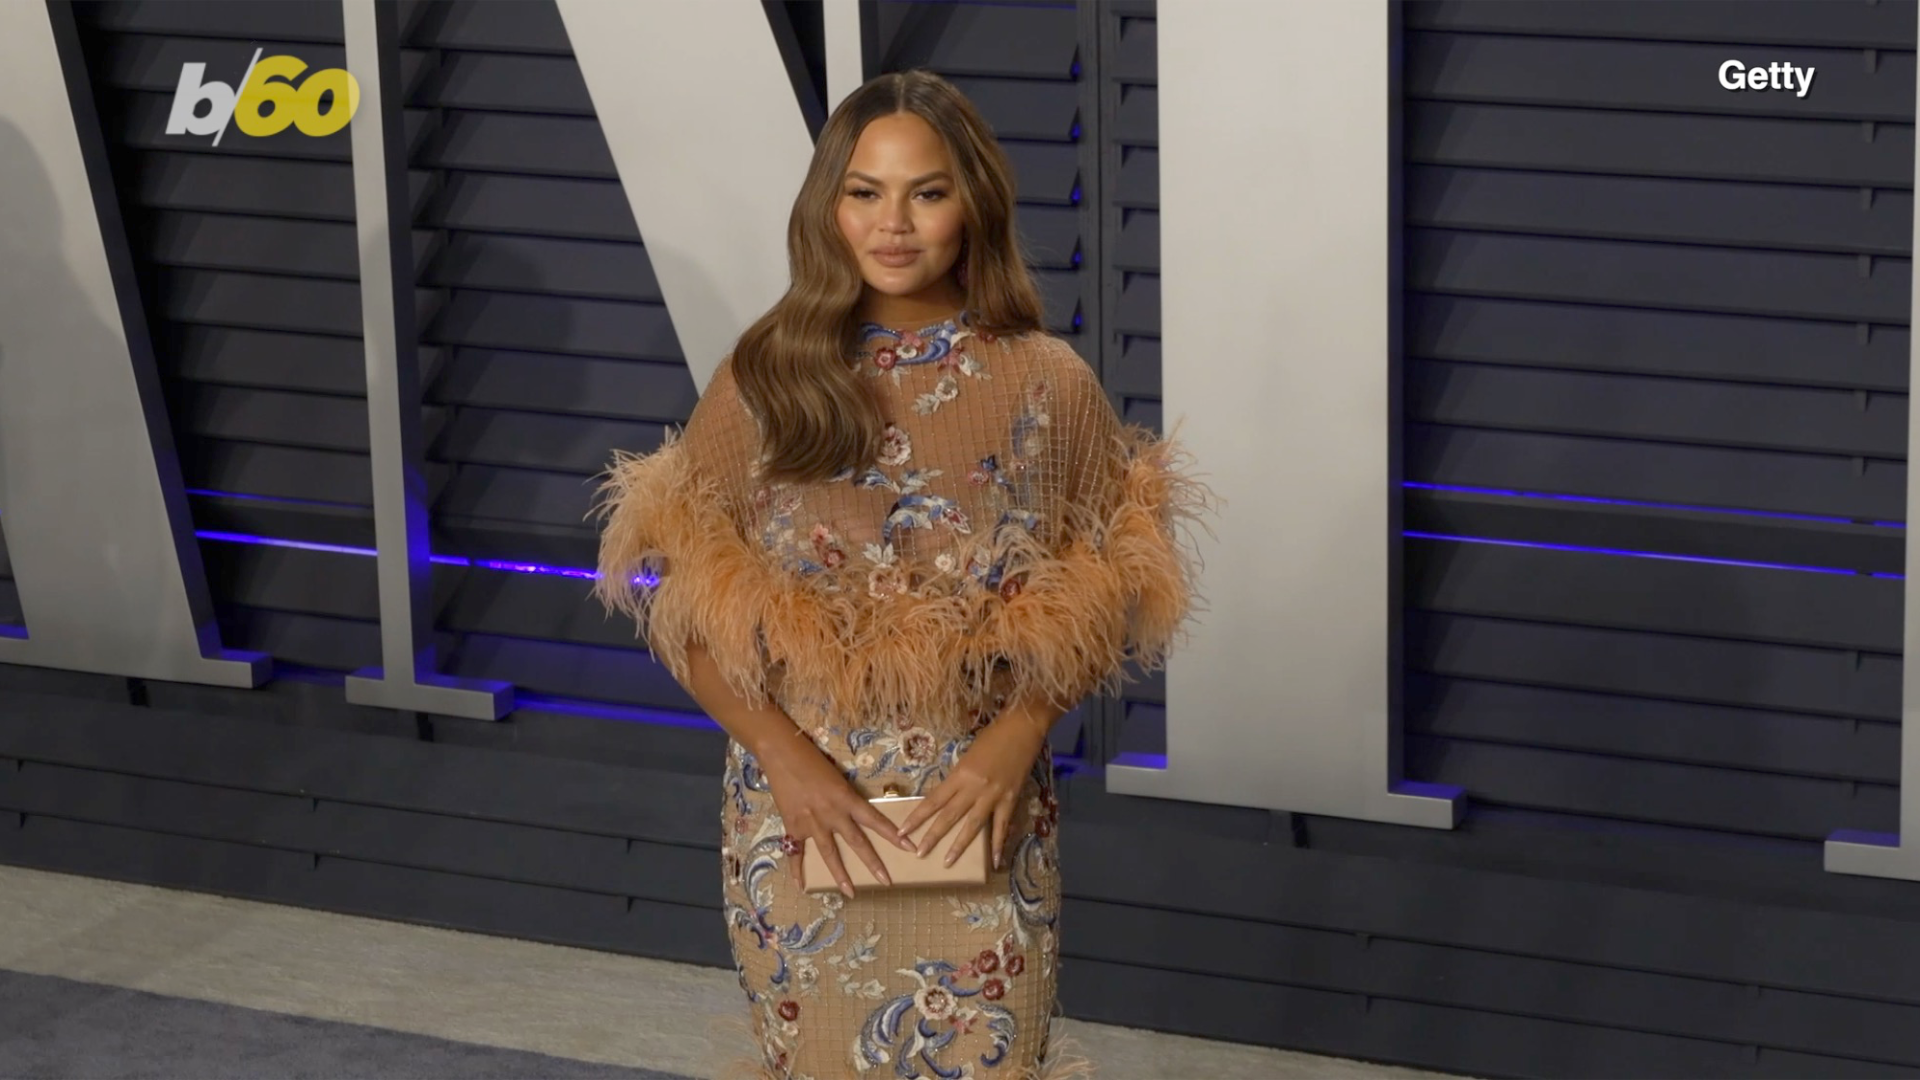 Chrissy Teigen Just Begged Dr. Pimple Popper For Help Getting Rid Of A Four-Year-Old Zit On Instagram